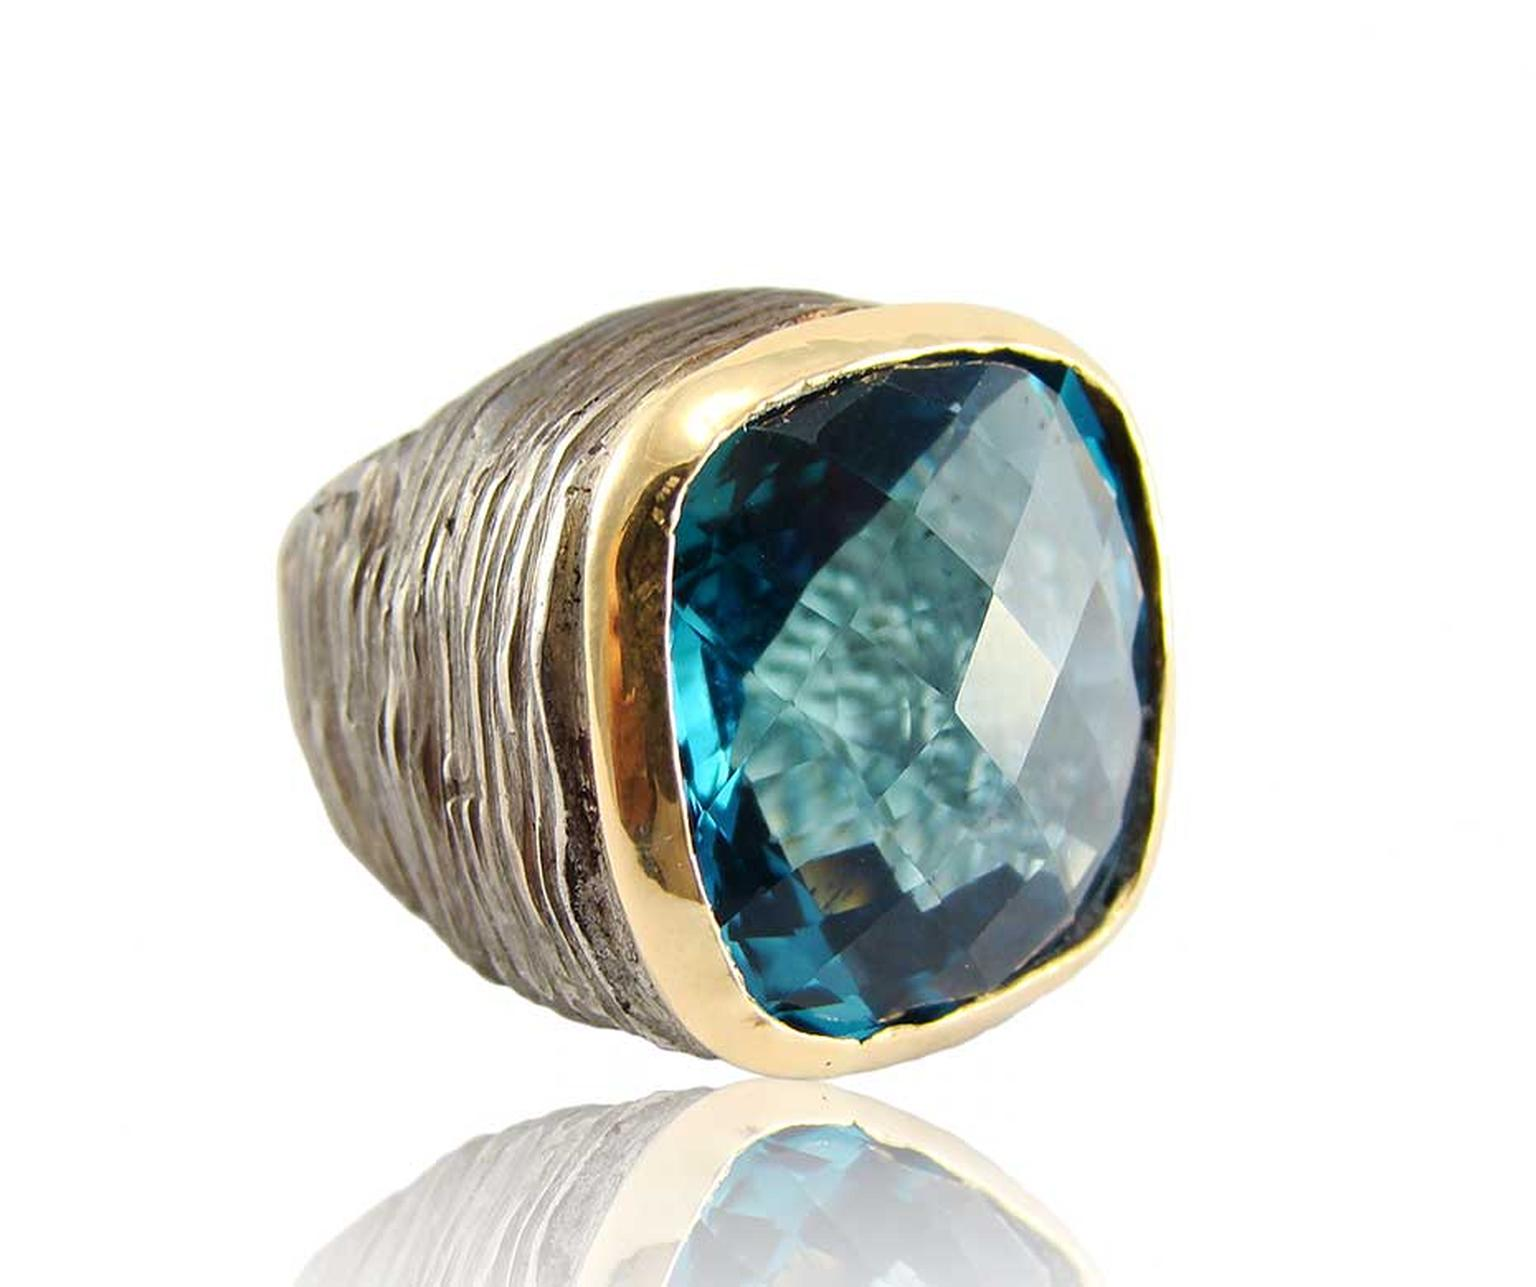 Corrado Giuspino blue green topaz cocktail ring.